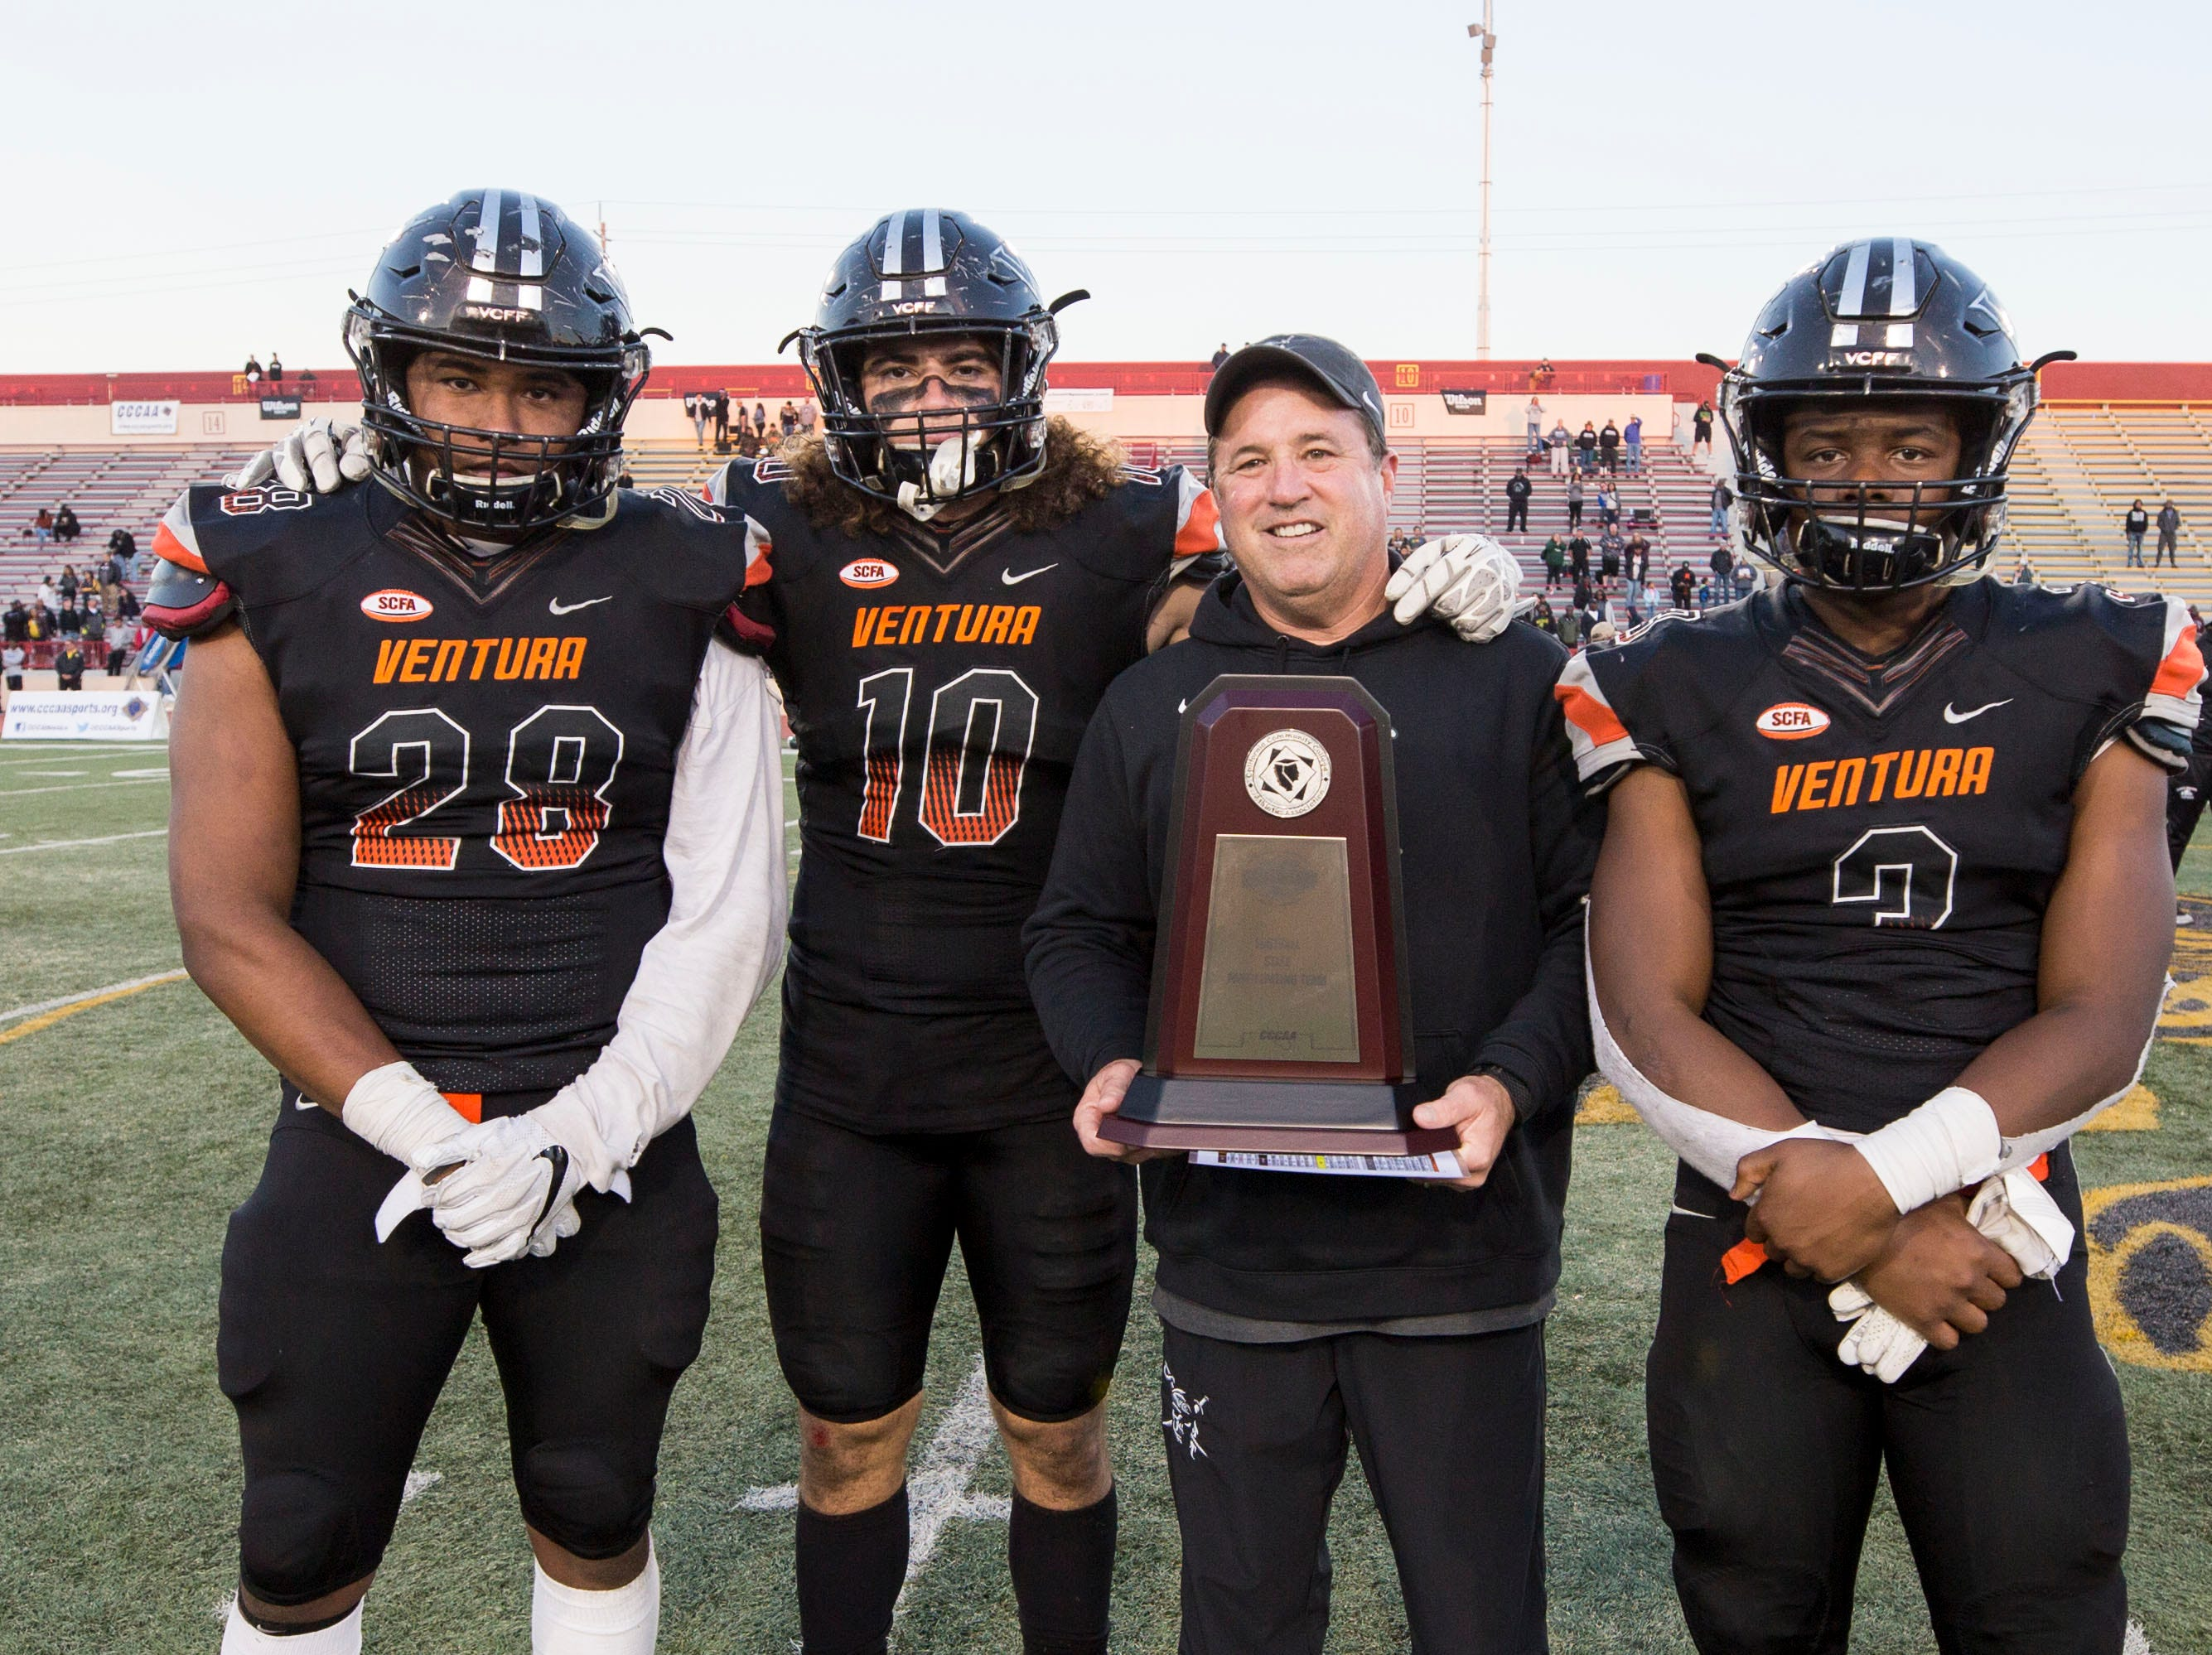 Ventura College head coach Steve Mooshagian poses with the CCCAA state finalist trophy alongside captains Dondre Baker (28), Trennan Carlson (10) and Thomas Duckett (3) after  the CCCAA state championship game on Saturday afternoon at Sacramento City's Hughes Stadium. Laney won, 40-35.